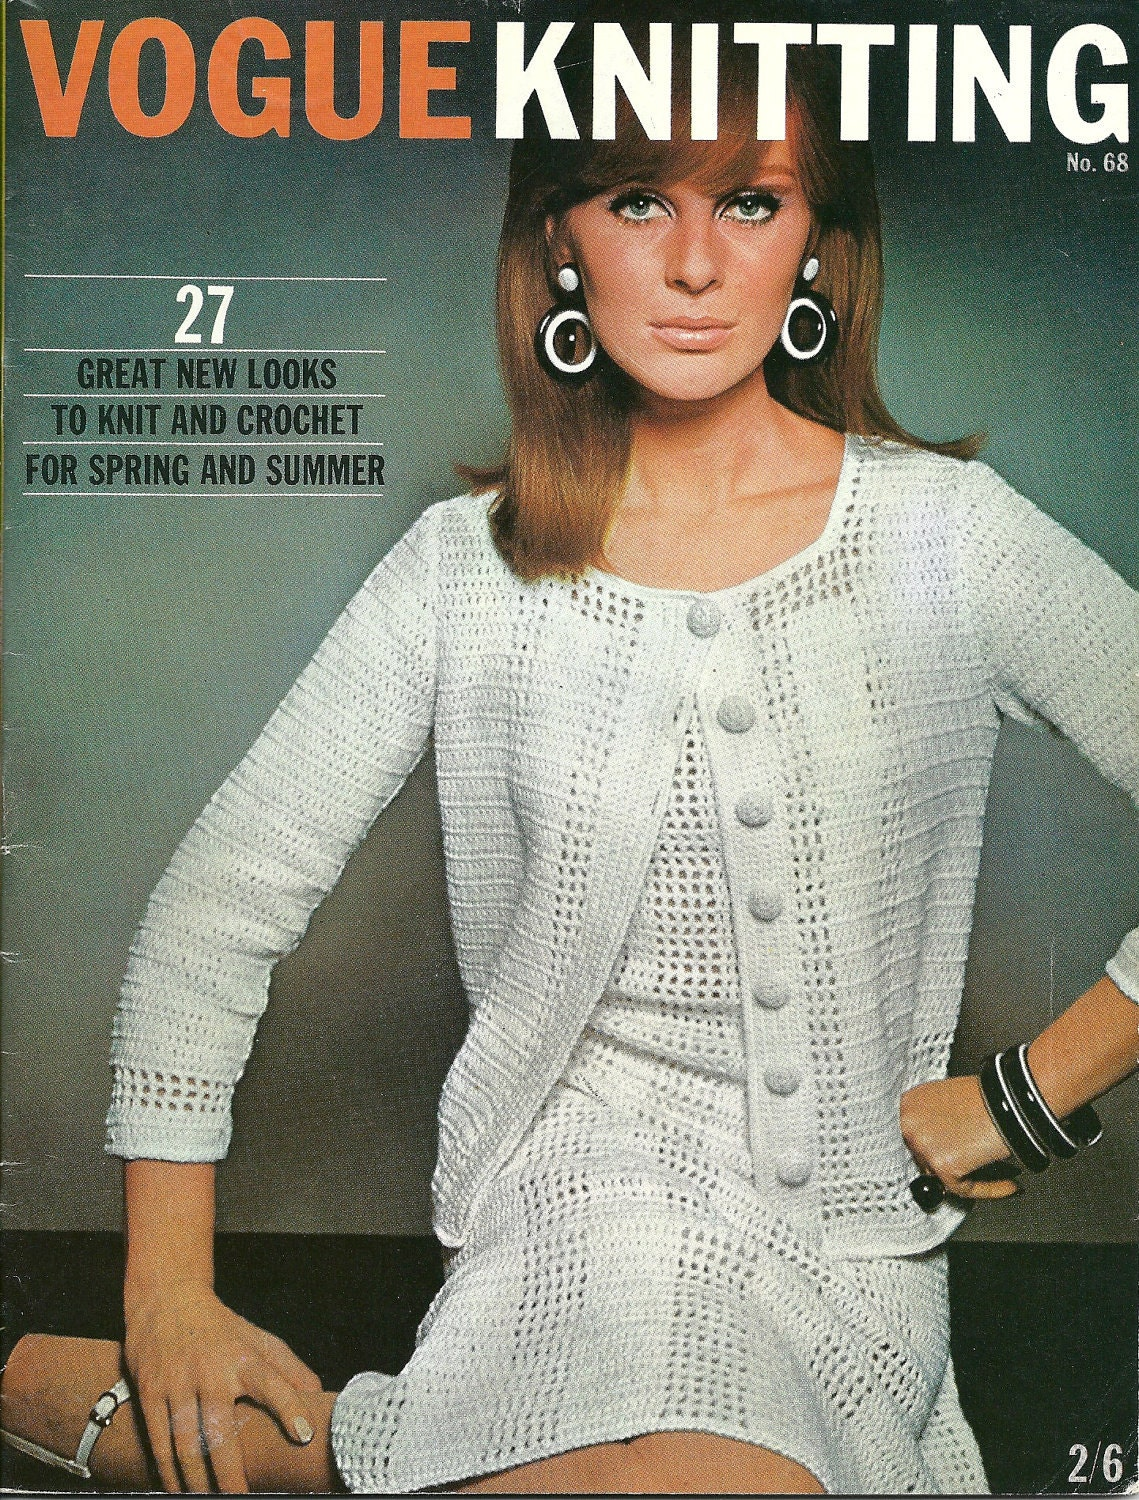 Knitting Magazines List : Vogue knitting magazine no by vintagemadamedefarge